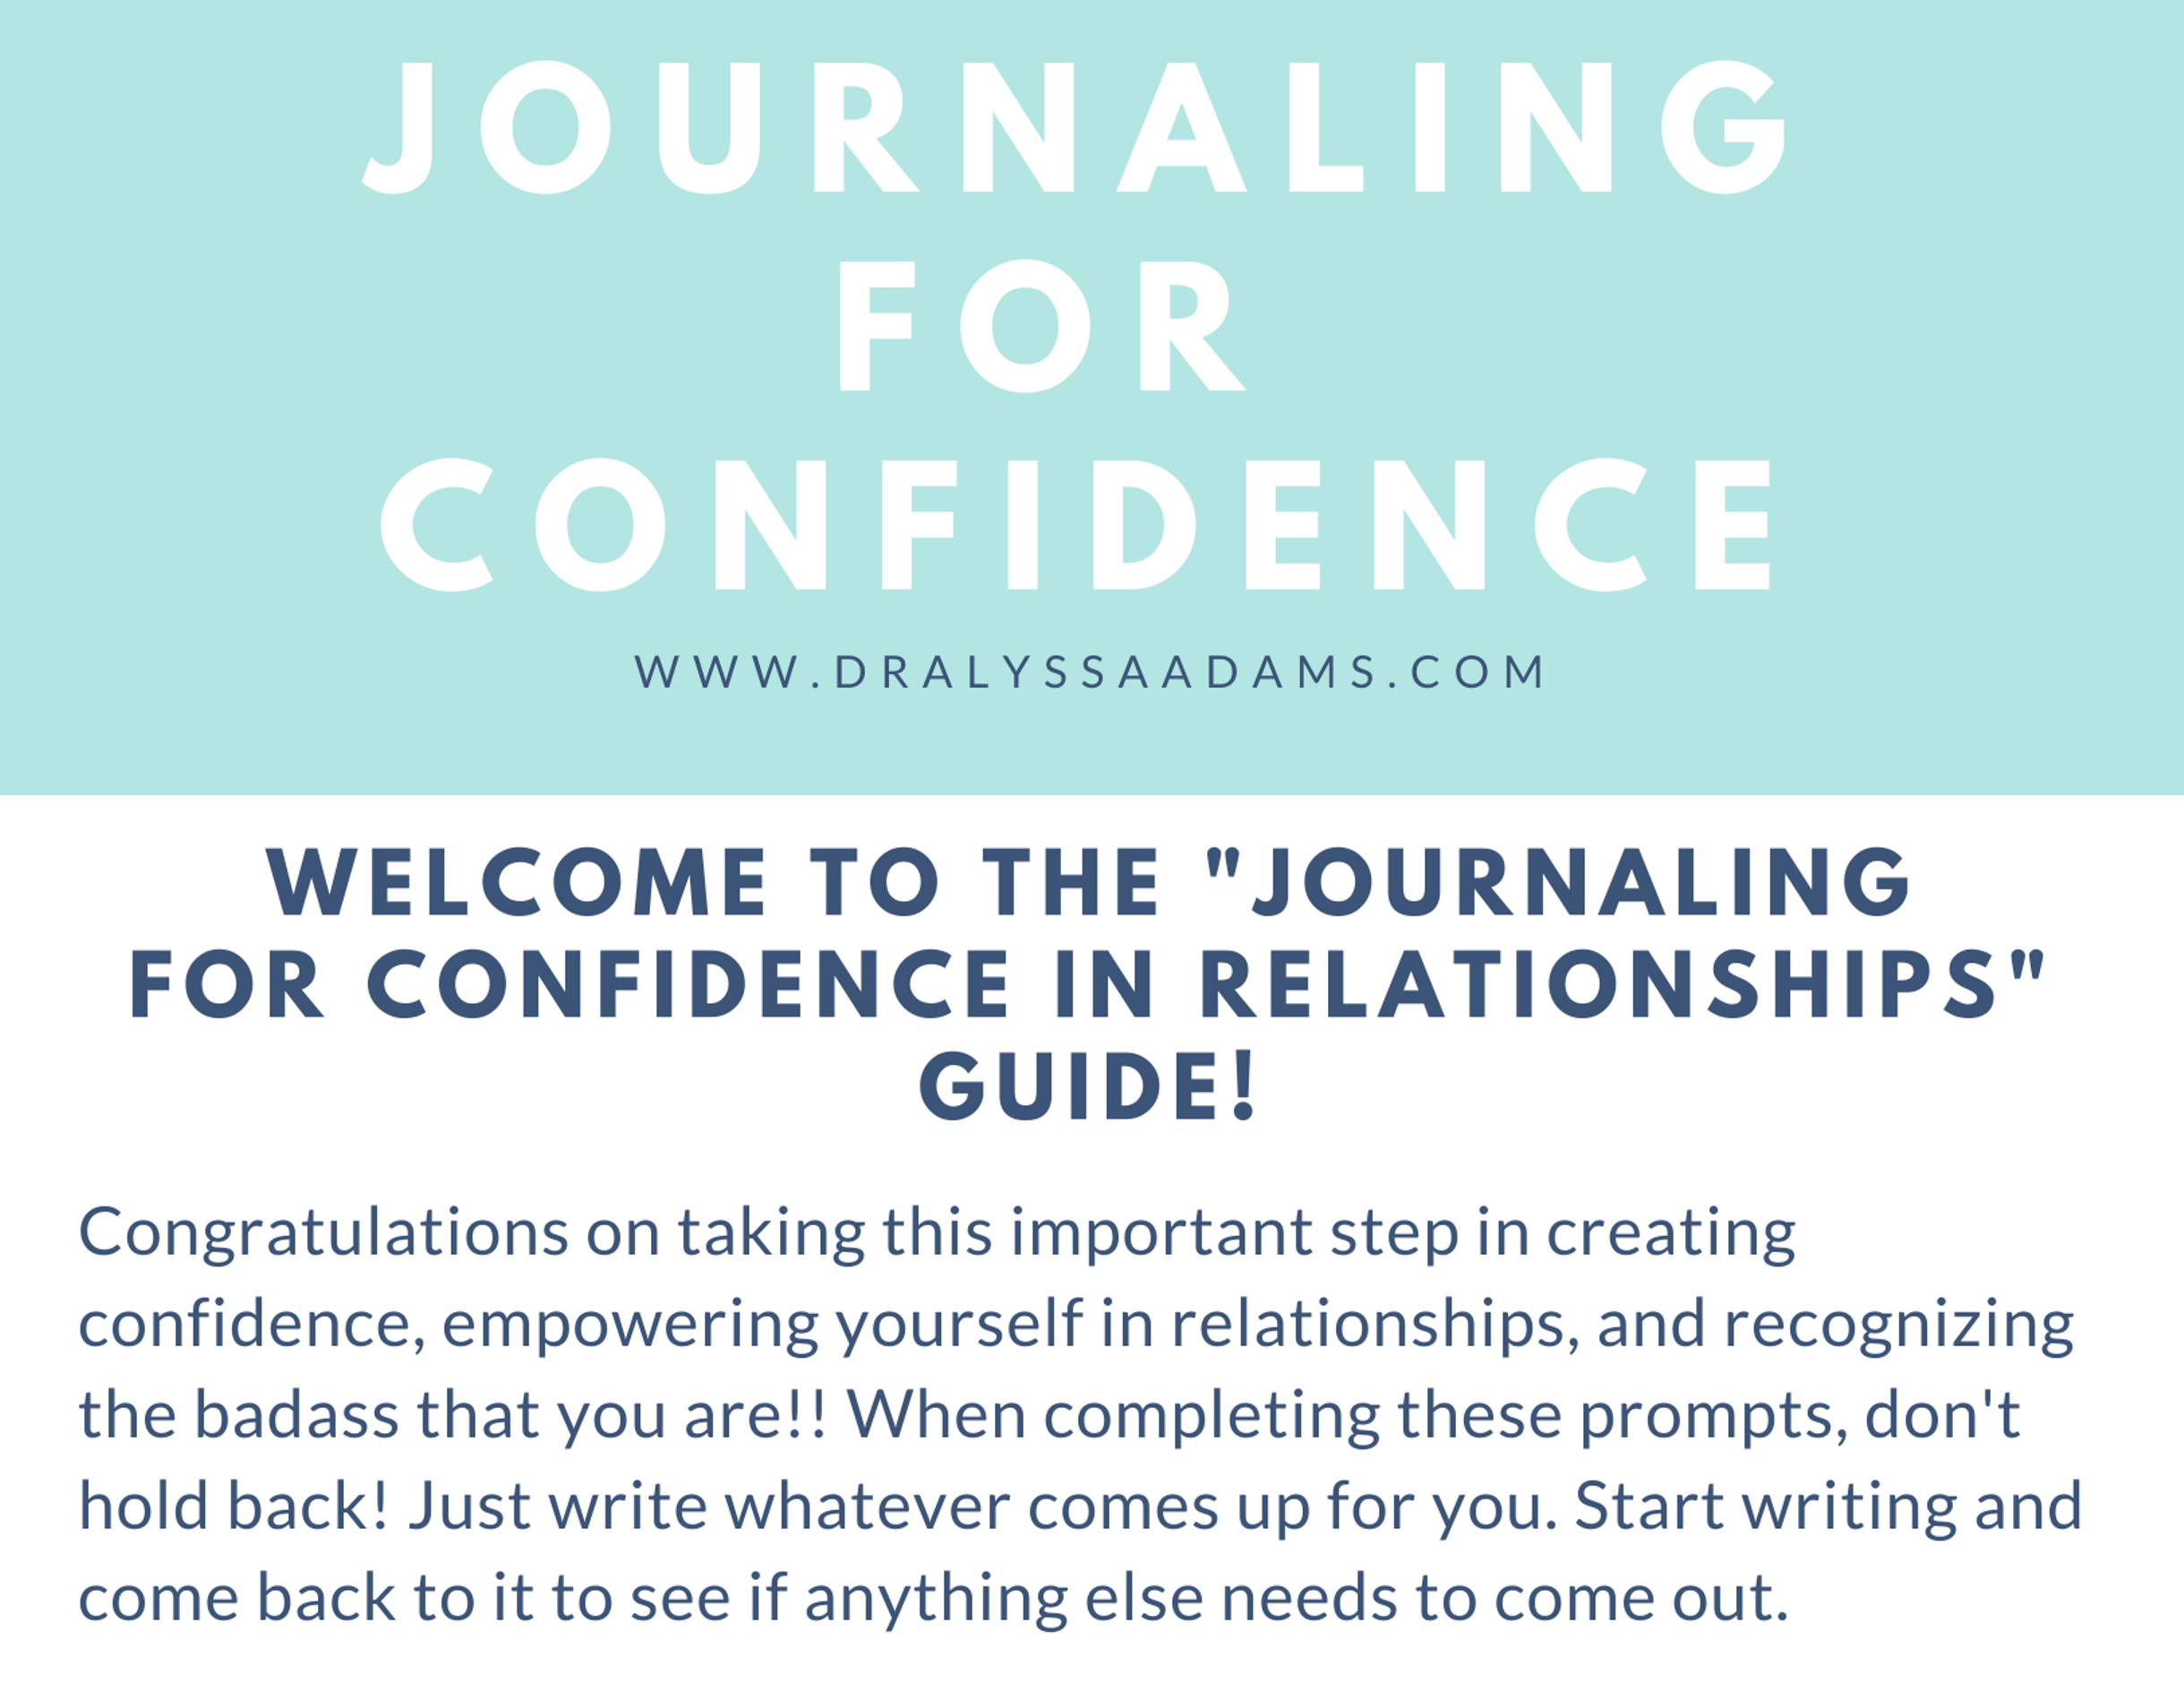 journaling-for-confidence-in-relationships-guide.png